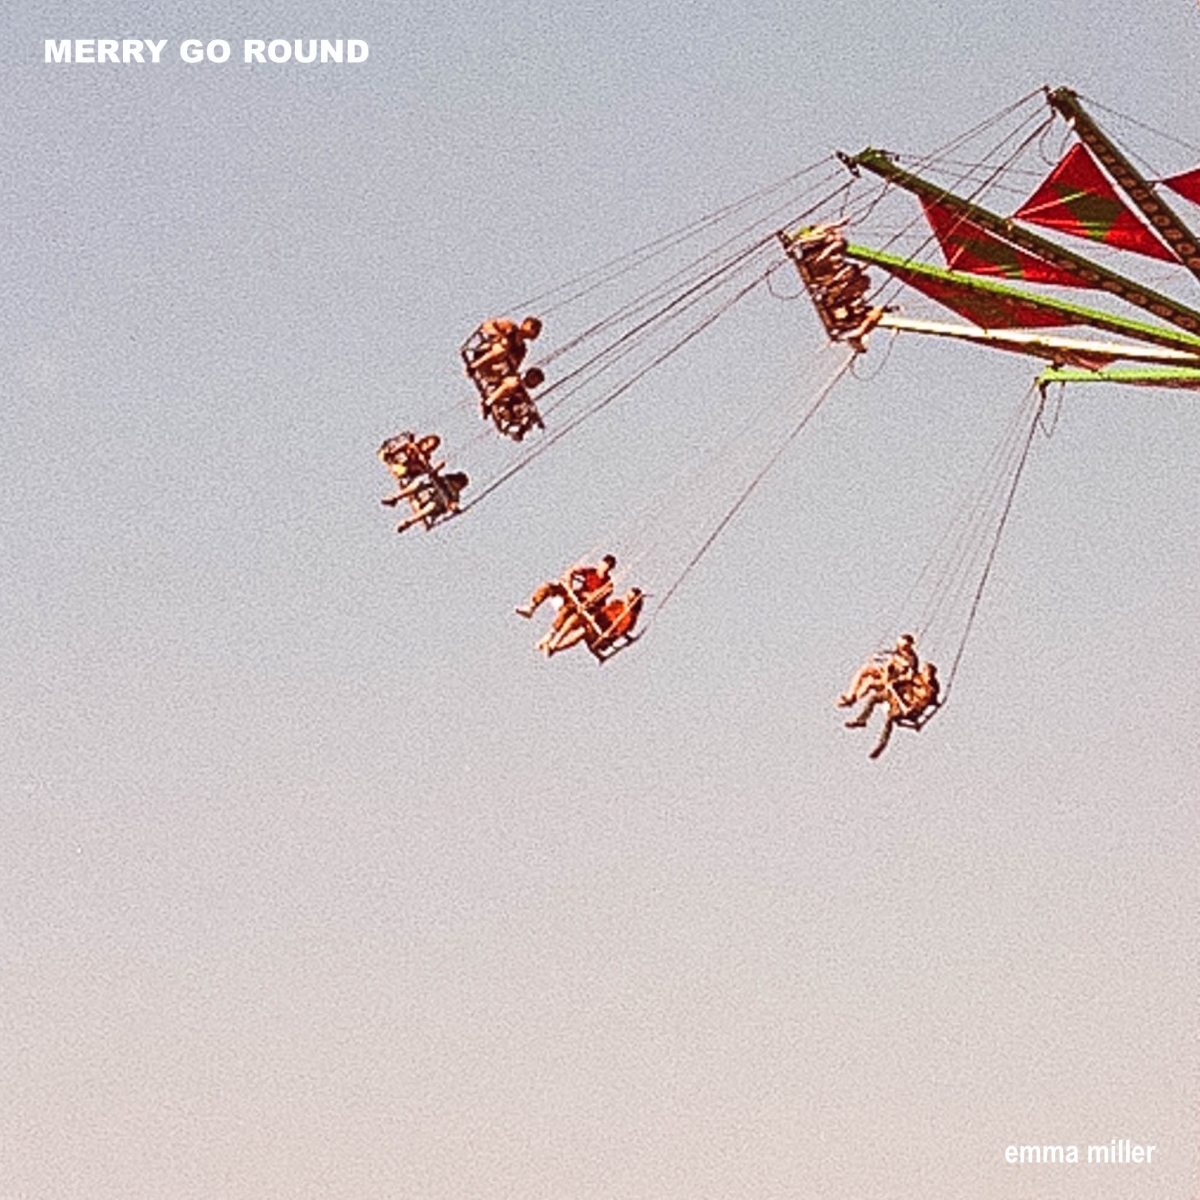 NEW MUSIC: Emma Miller – Merry Go Round